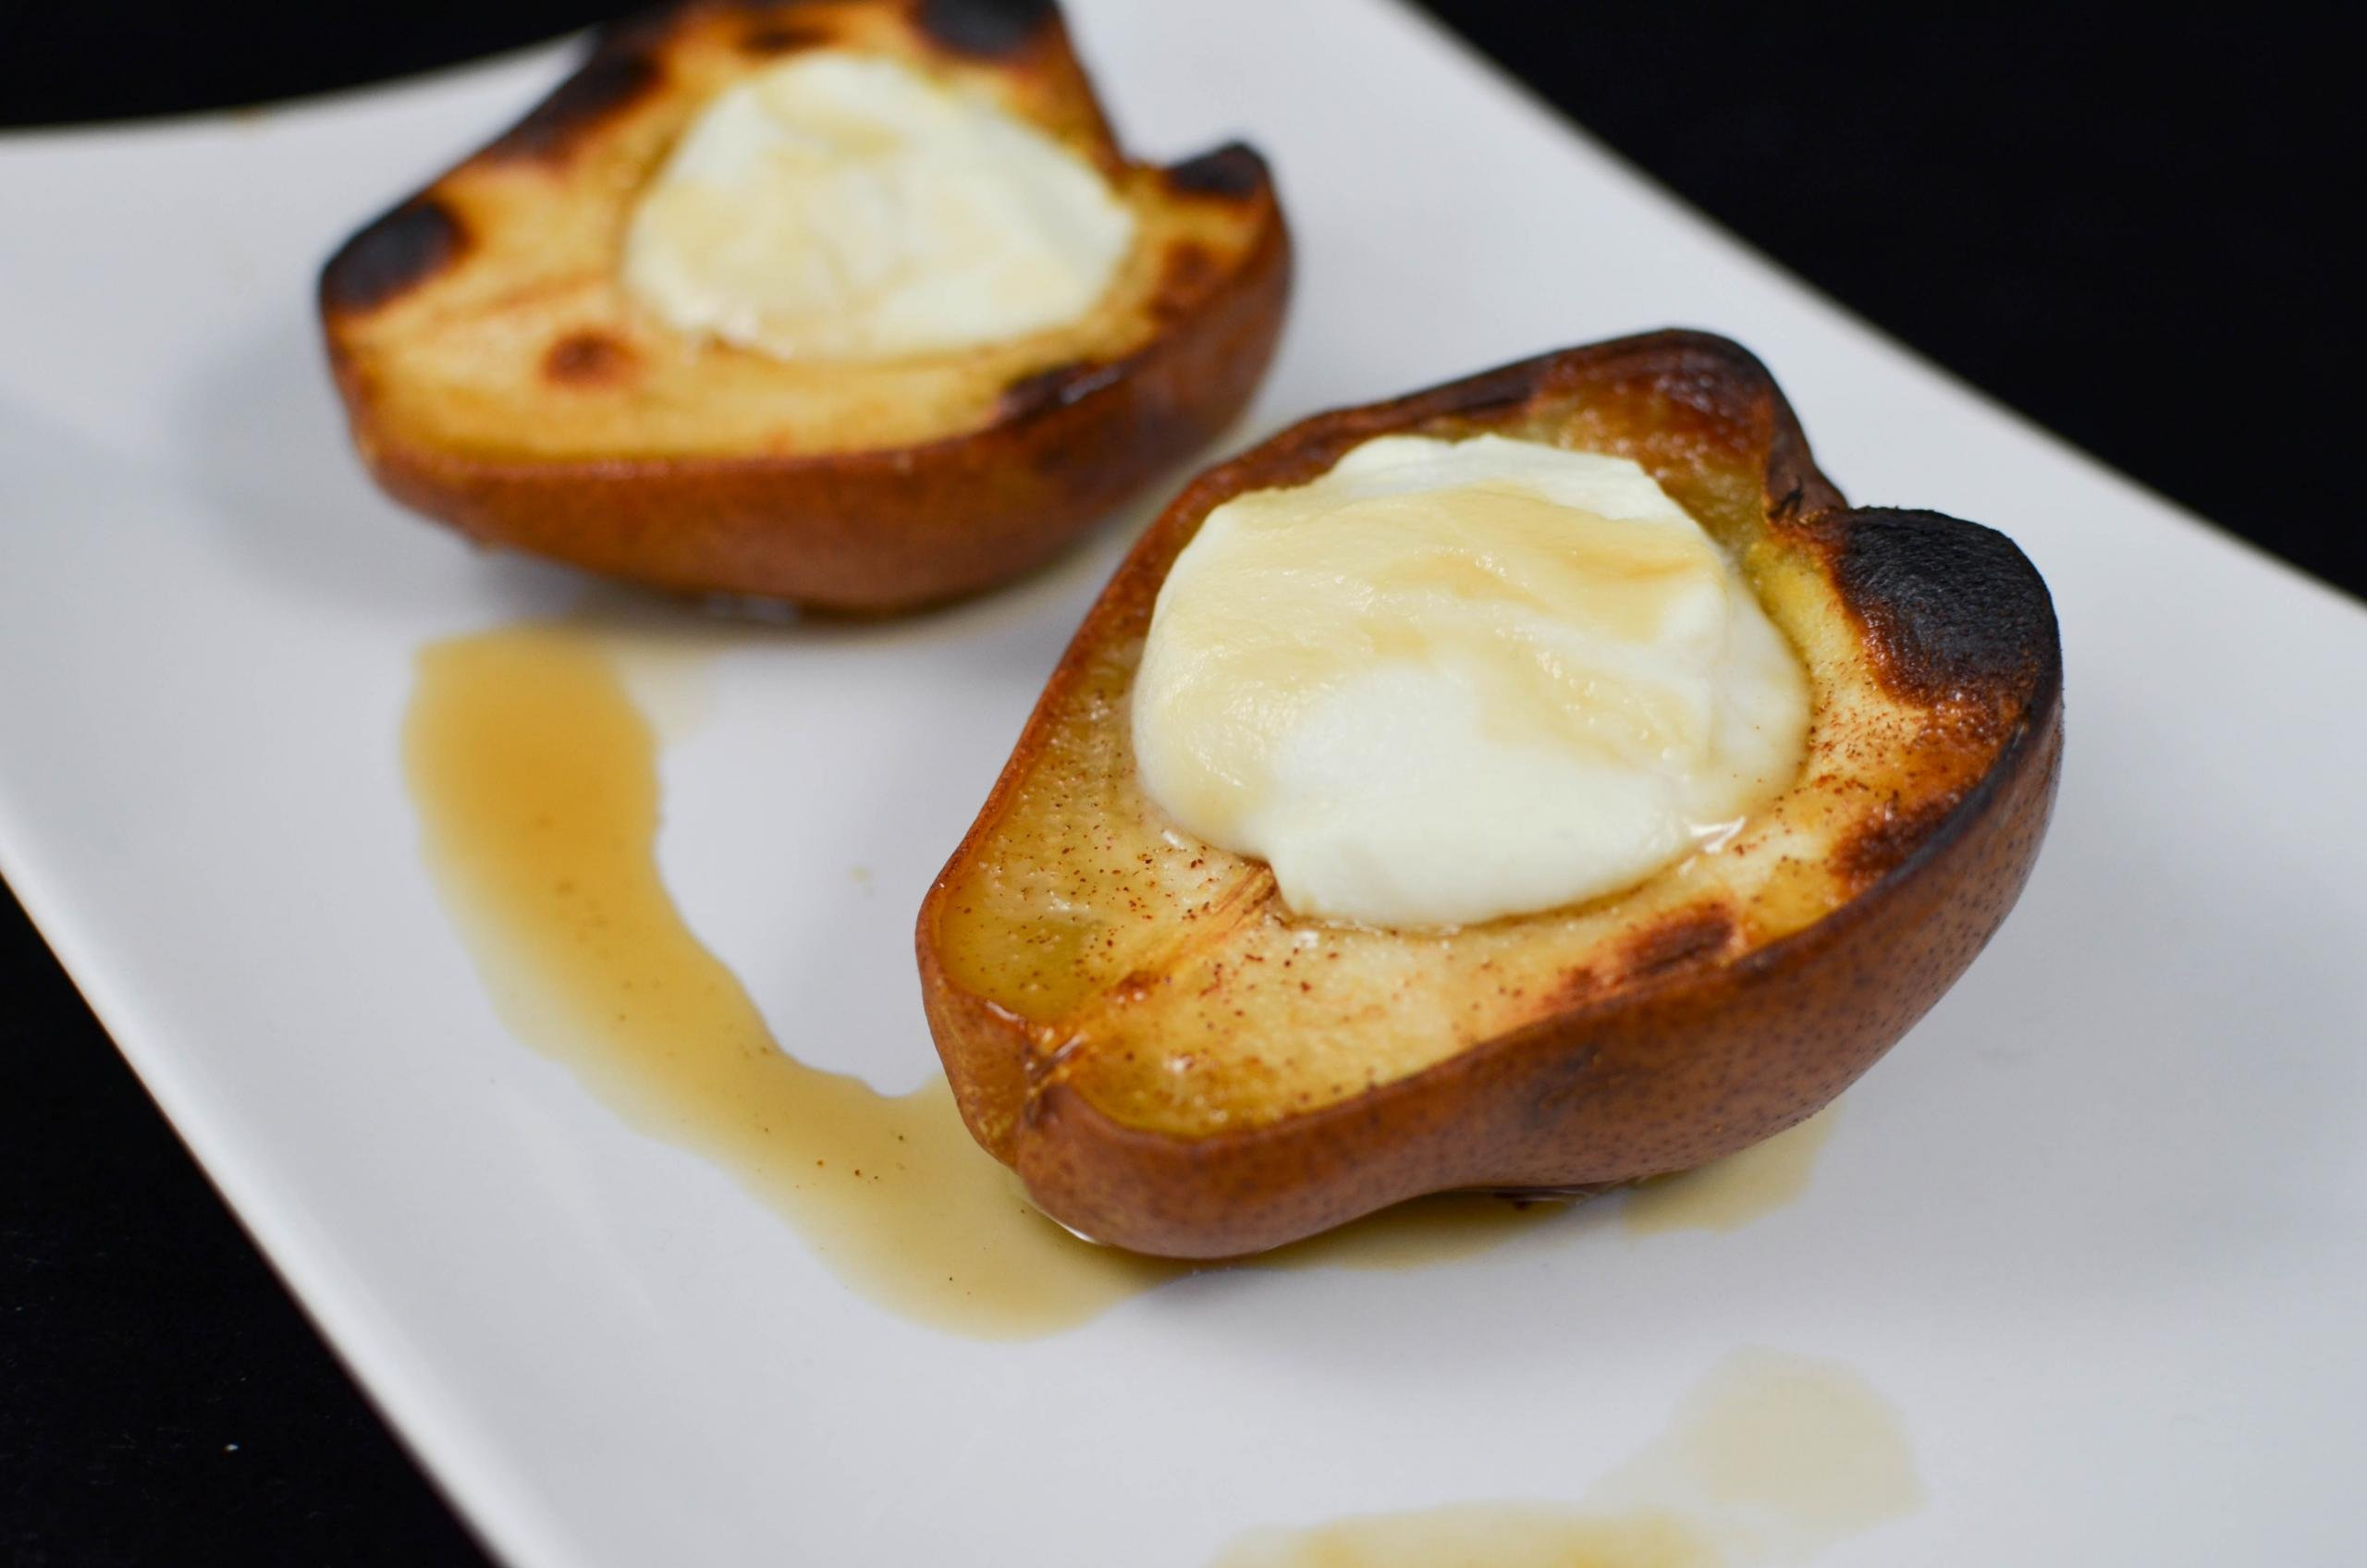 2 baked pears on a plate